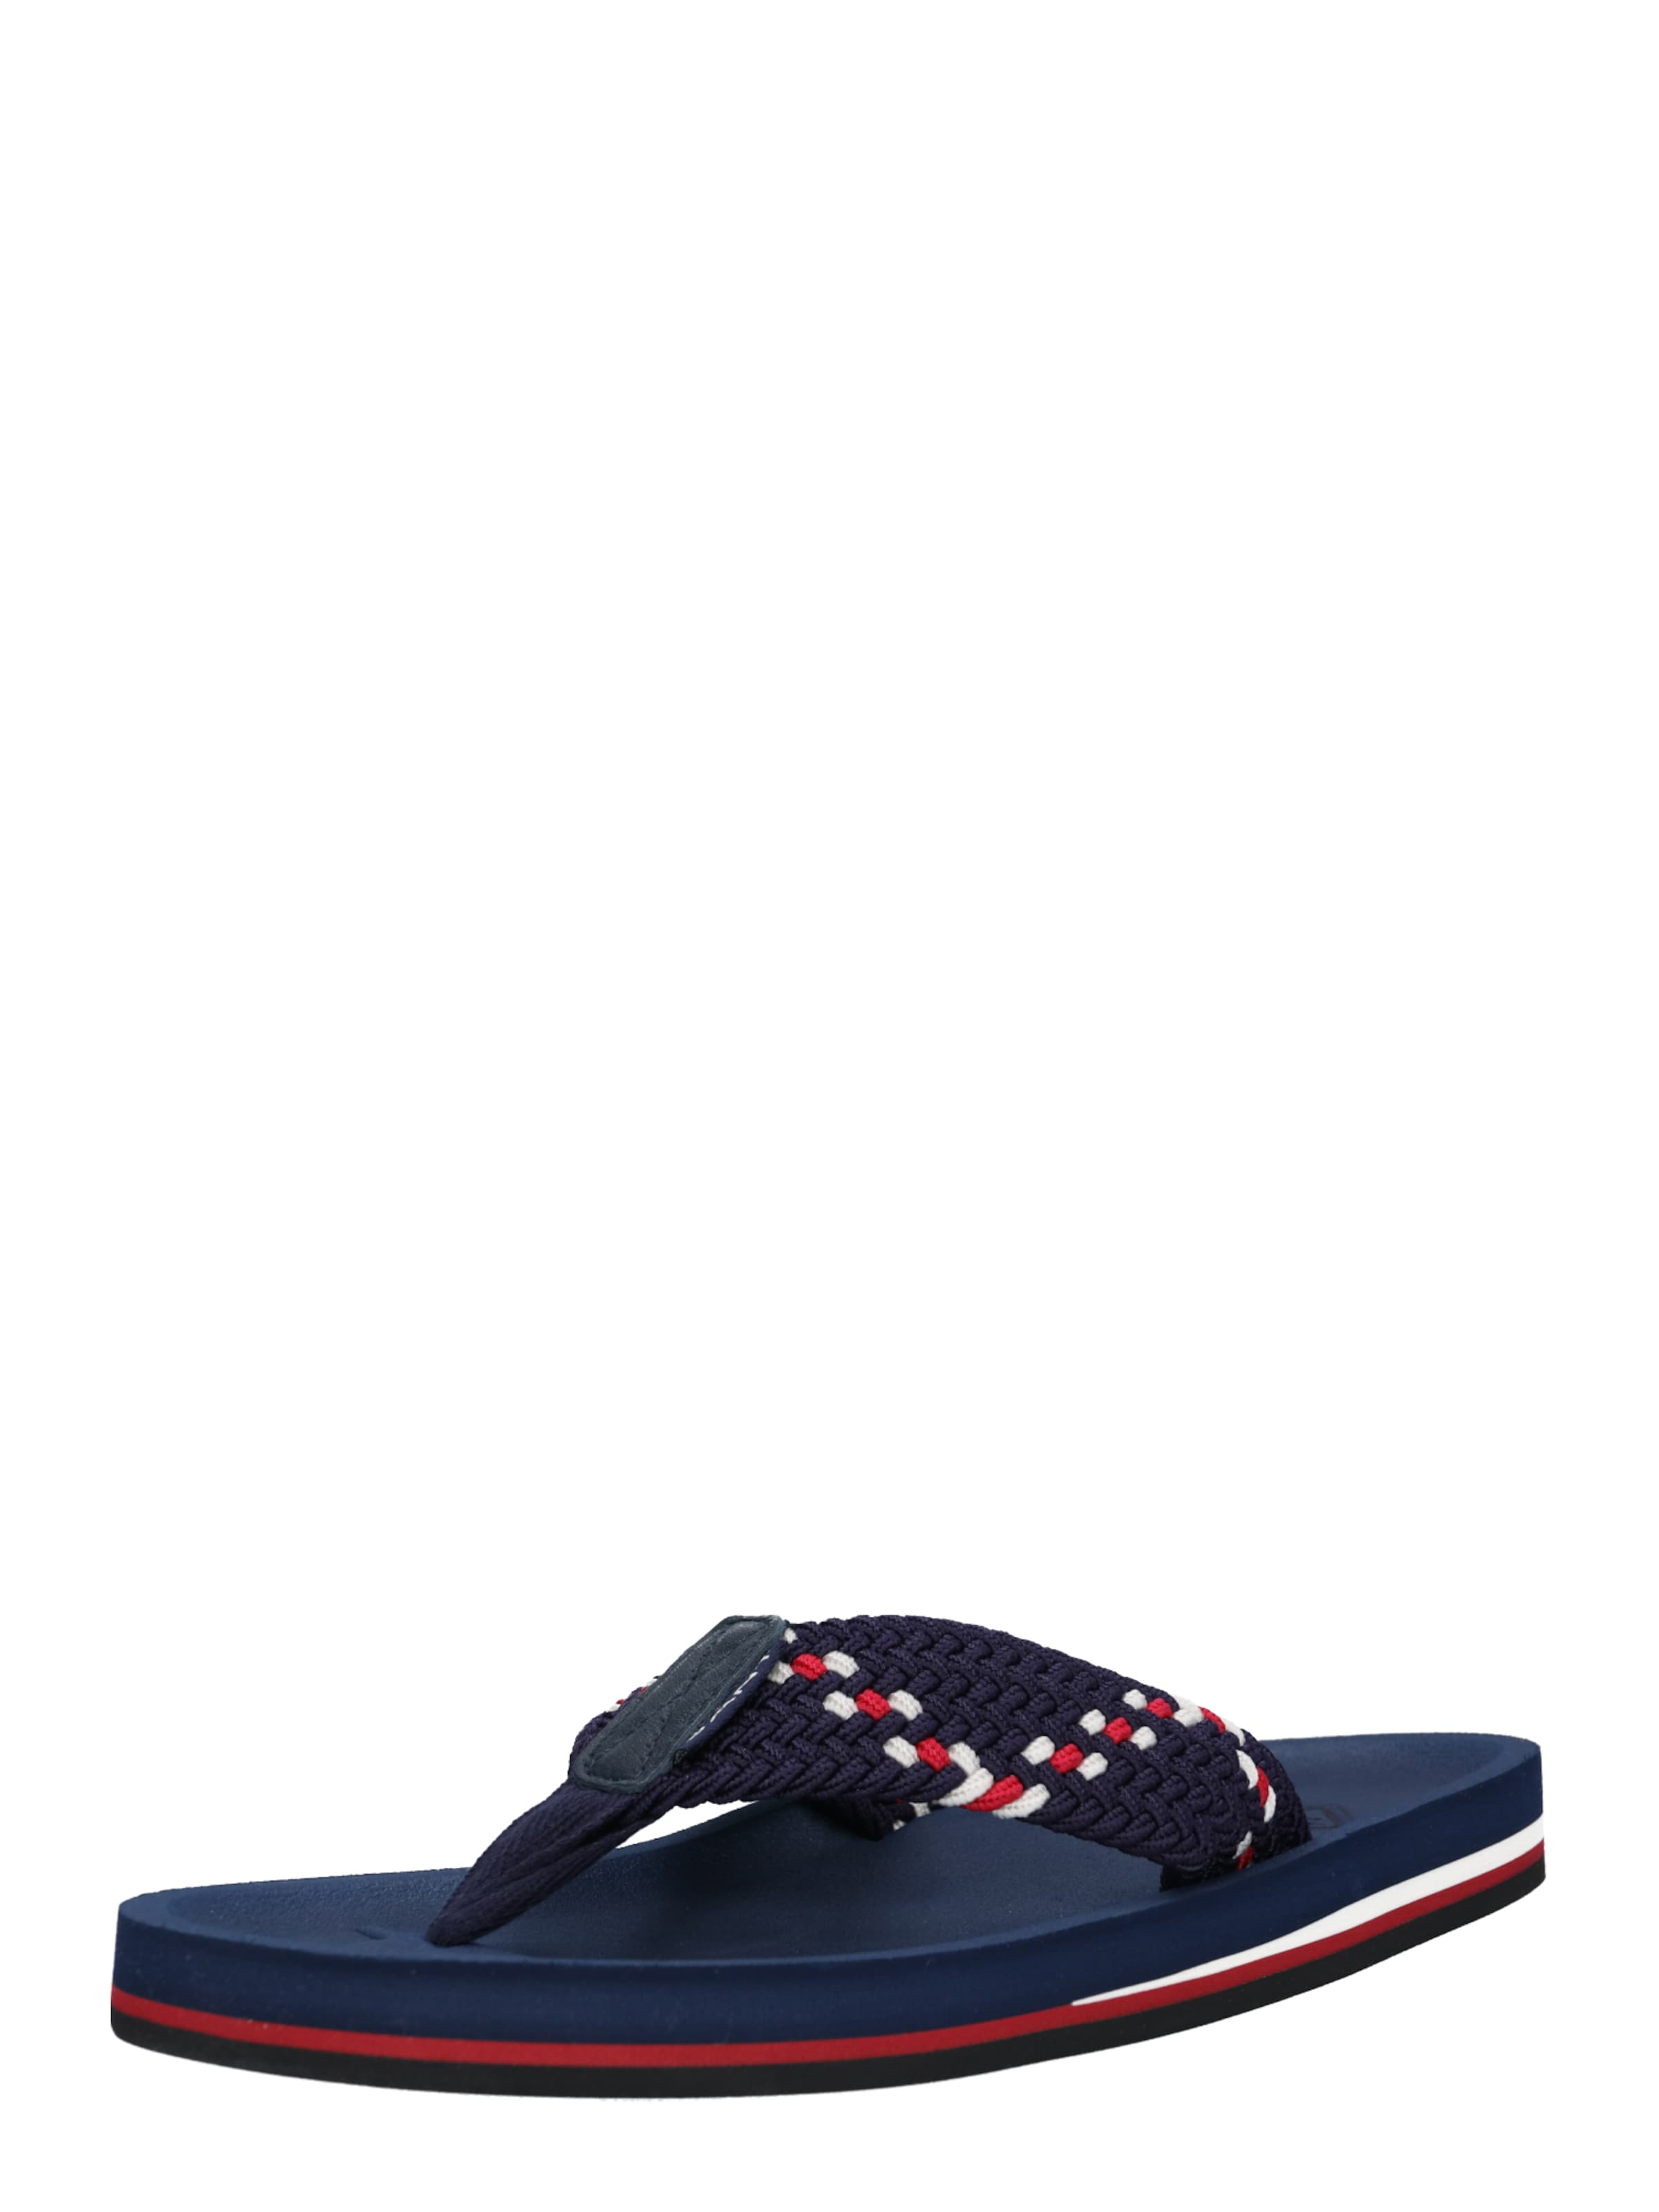 Weiß Slipper 'breeze' DunkelblauRot Gant In jL5RA43q